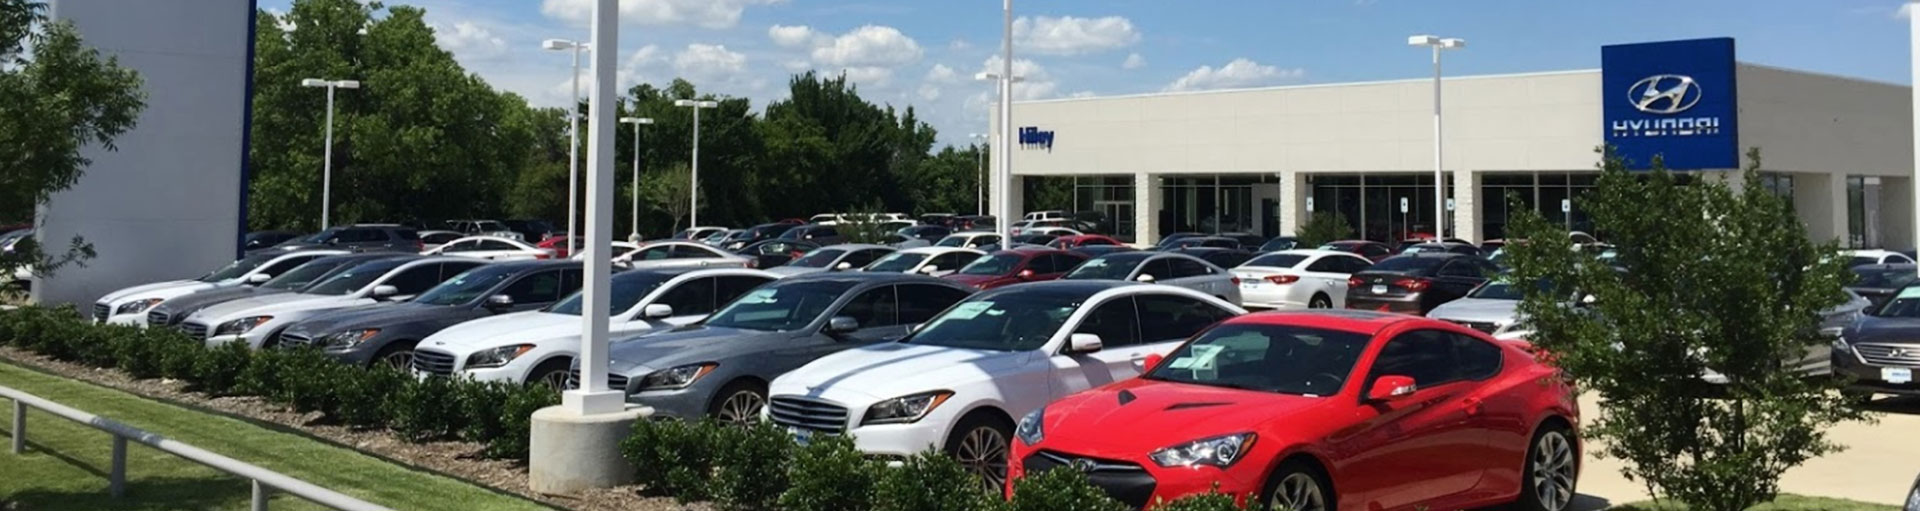 Hiley Hyundai Dealership